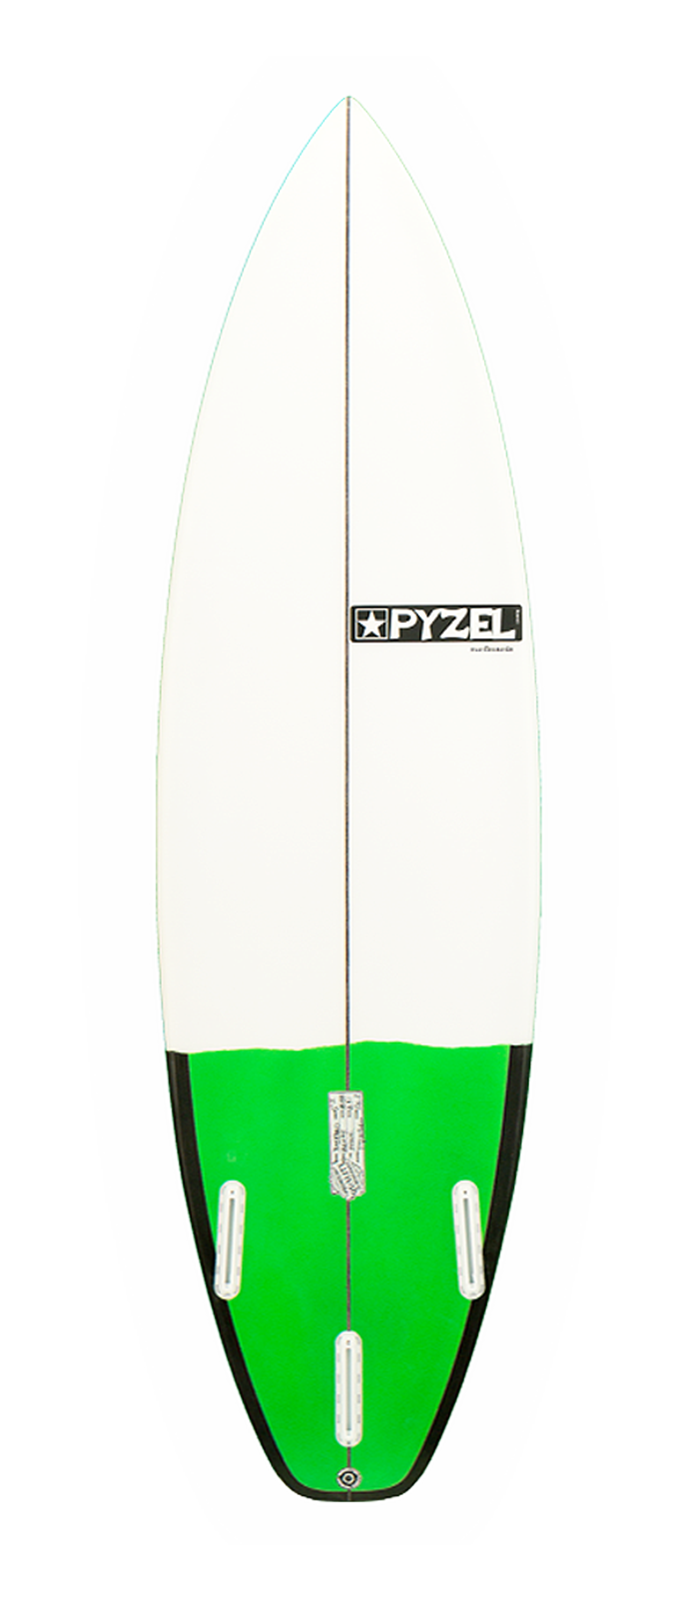 THE BASTARD surfboard model bottom